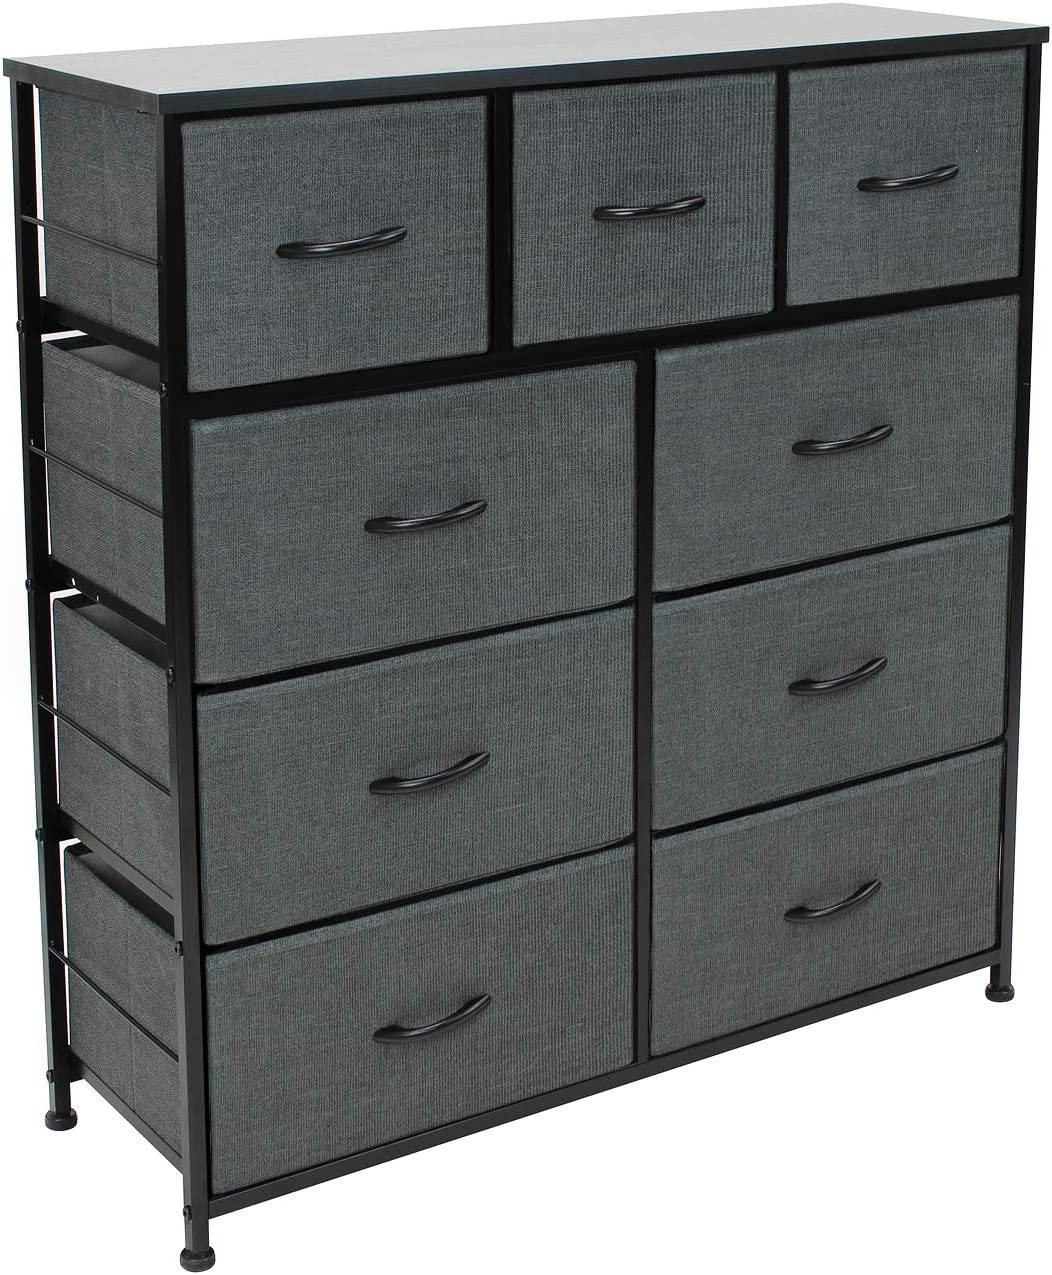 Sorbus Dresser with 9 Drawers - Furniture Storage Chest Tower Unit for Bedroom, Hallway, Closet, Office Organization - Steel Frame, Wood Top, Easy Pull Fabric Bins (9 Drawers, Black)